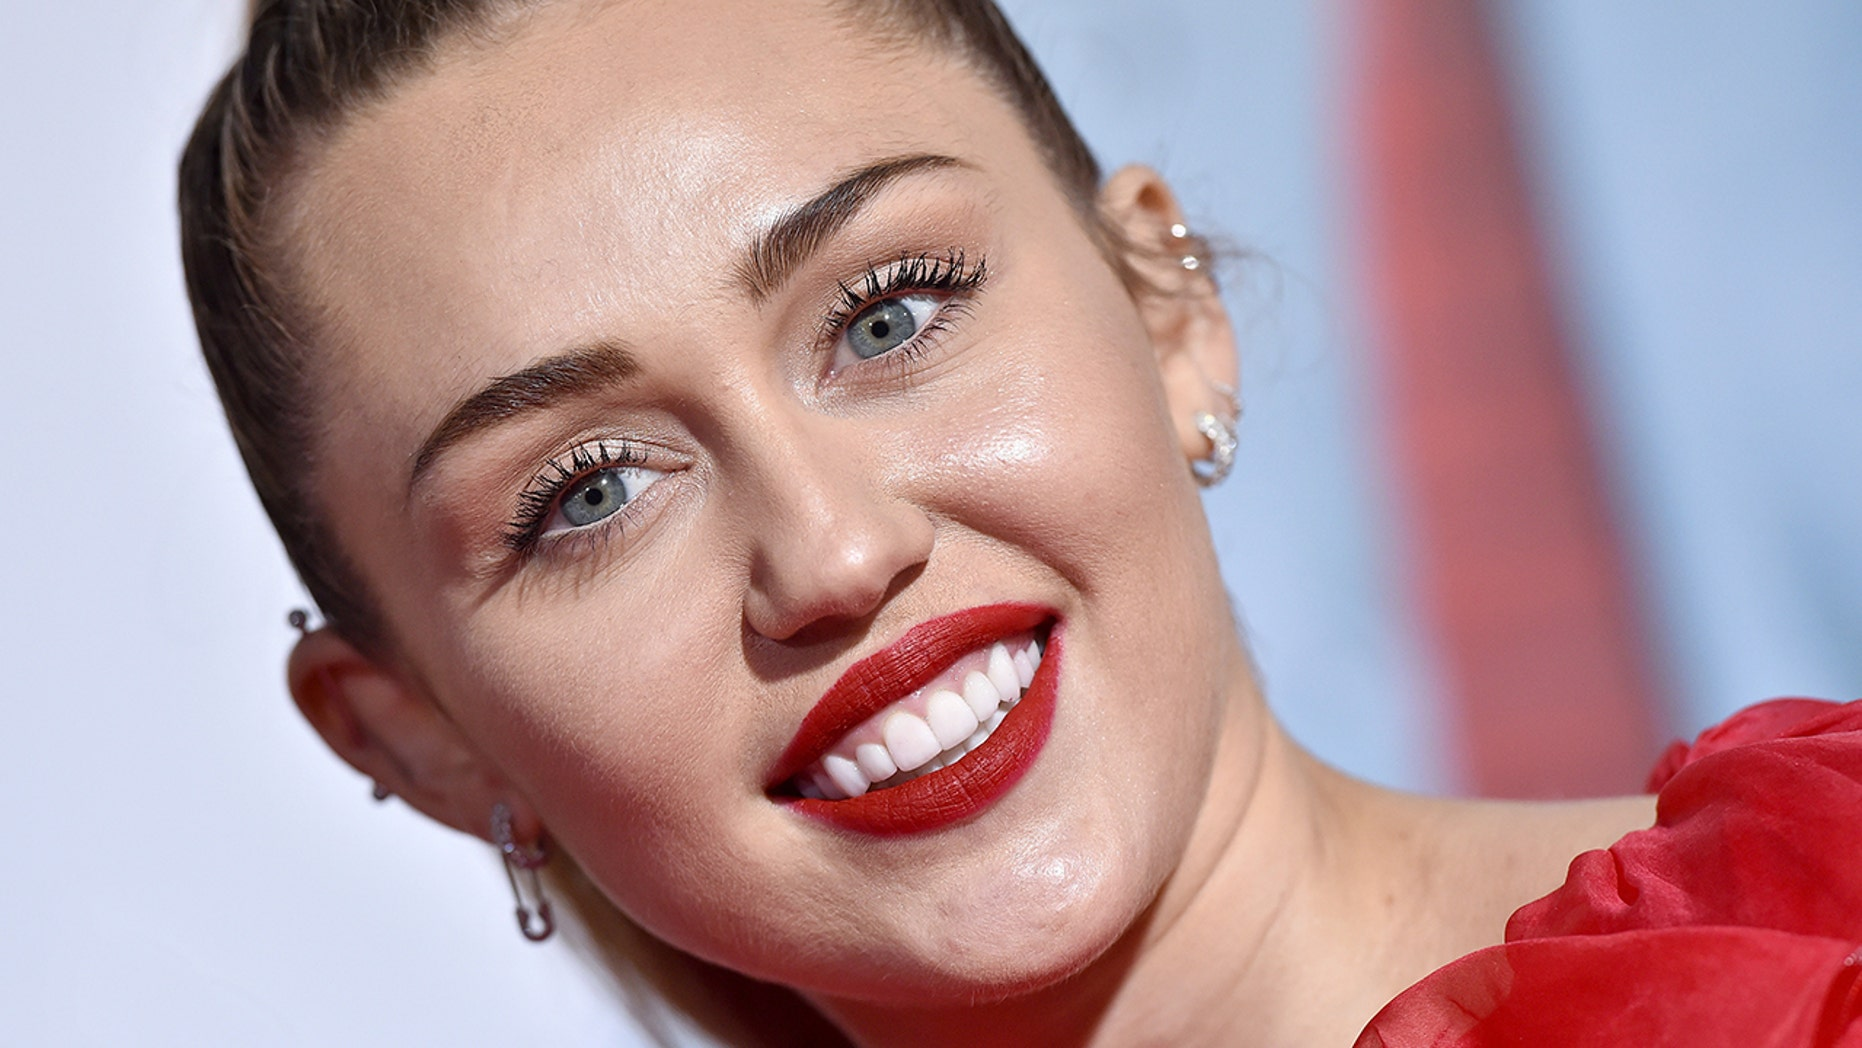 Miley Cyrus Sends Liam Hemsworth A Graphic Valentine